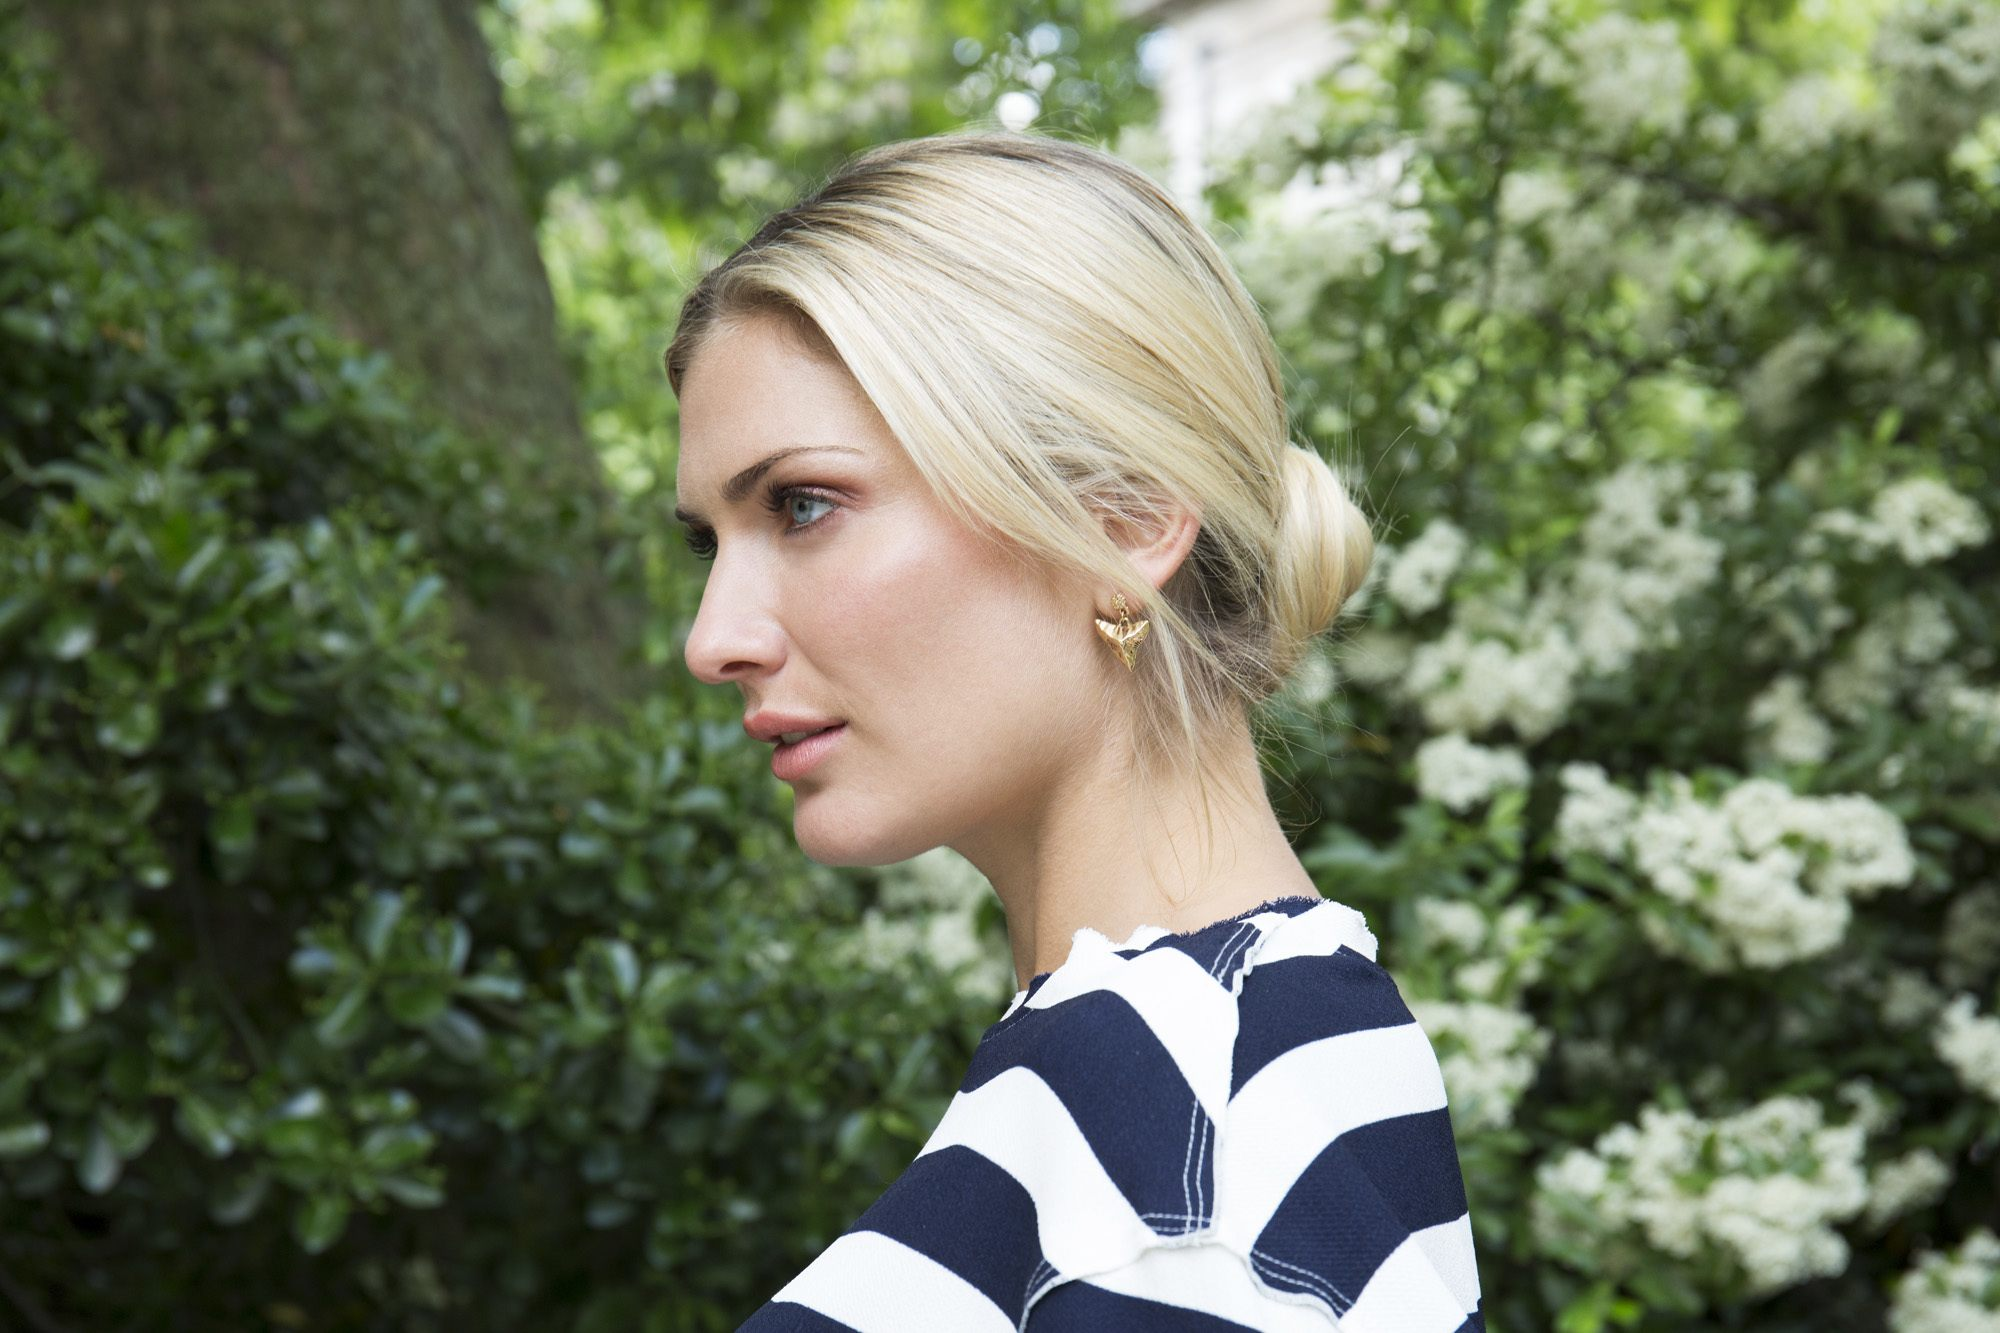 low bun hairstyles: close up shot of model with sleek, romantic low bun updo hairstyle, posing outside and wearing striped top